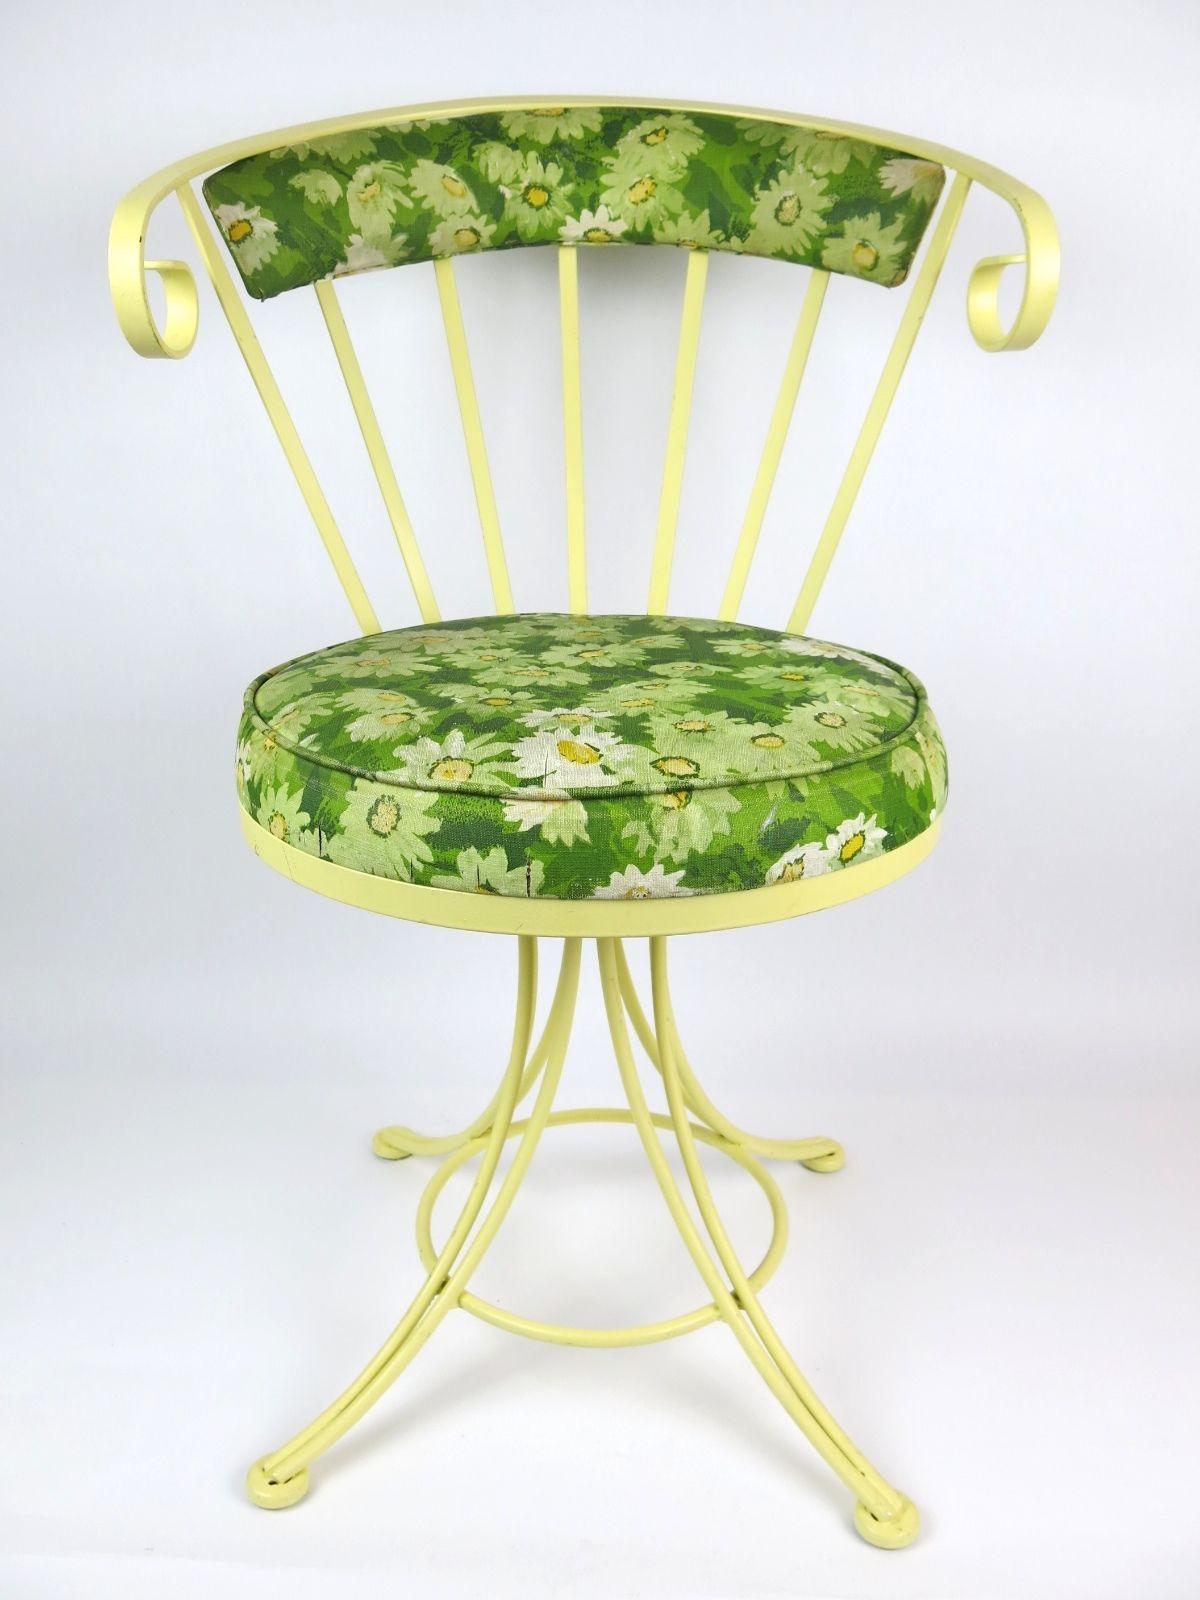 Pleasing Vintage Wrought Iron Garden Patio Swivel Chair Retro Country Bralicious Painted Fabric Chair Ideas Braliciousco